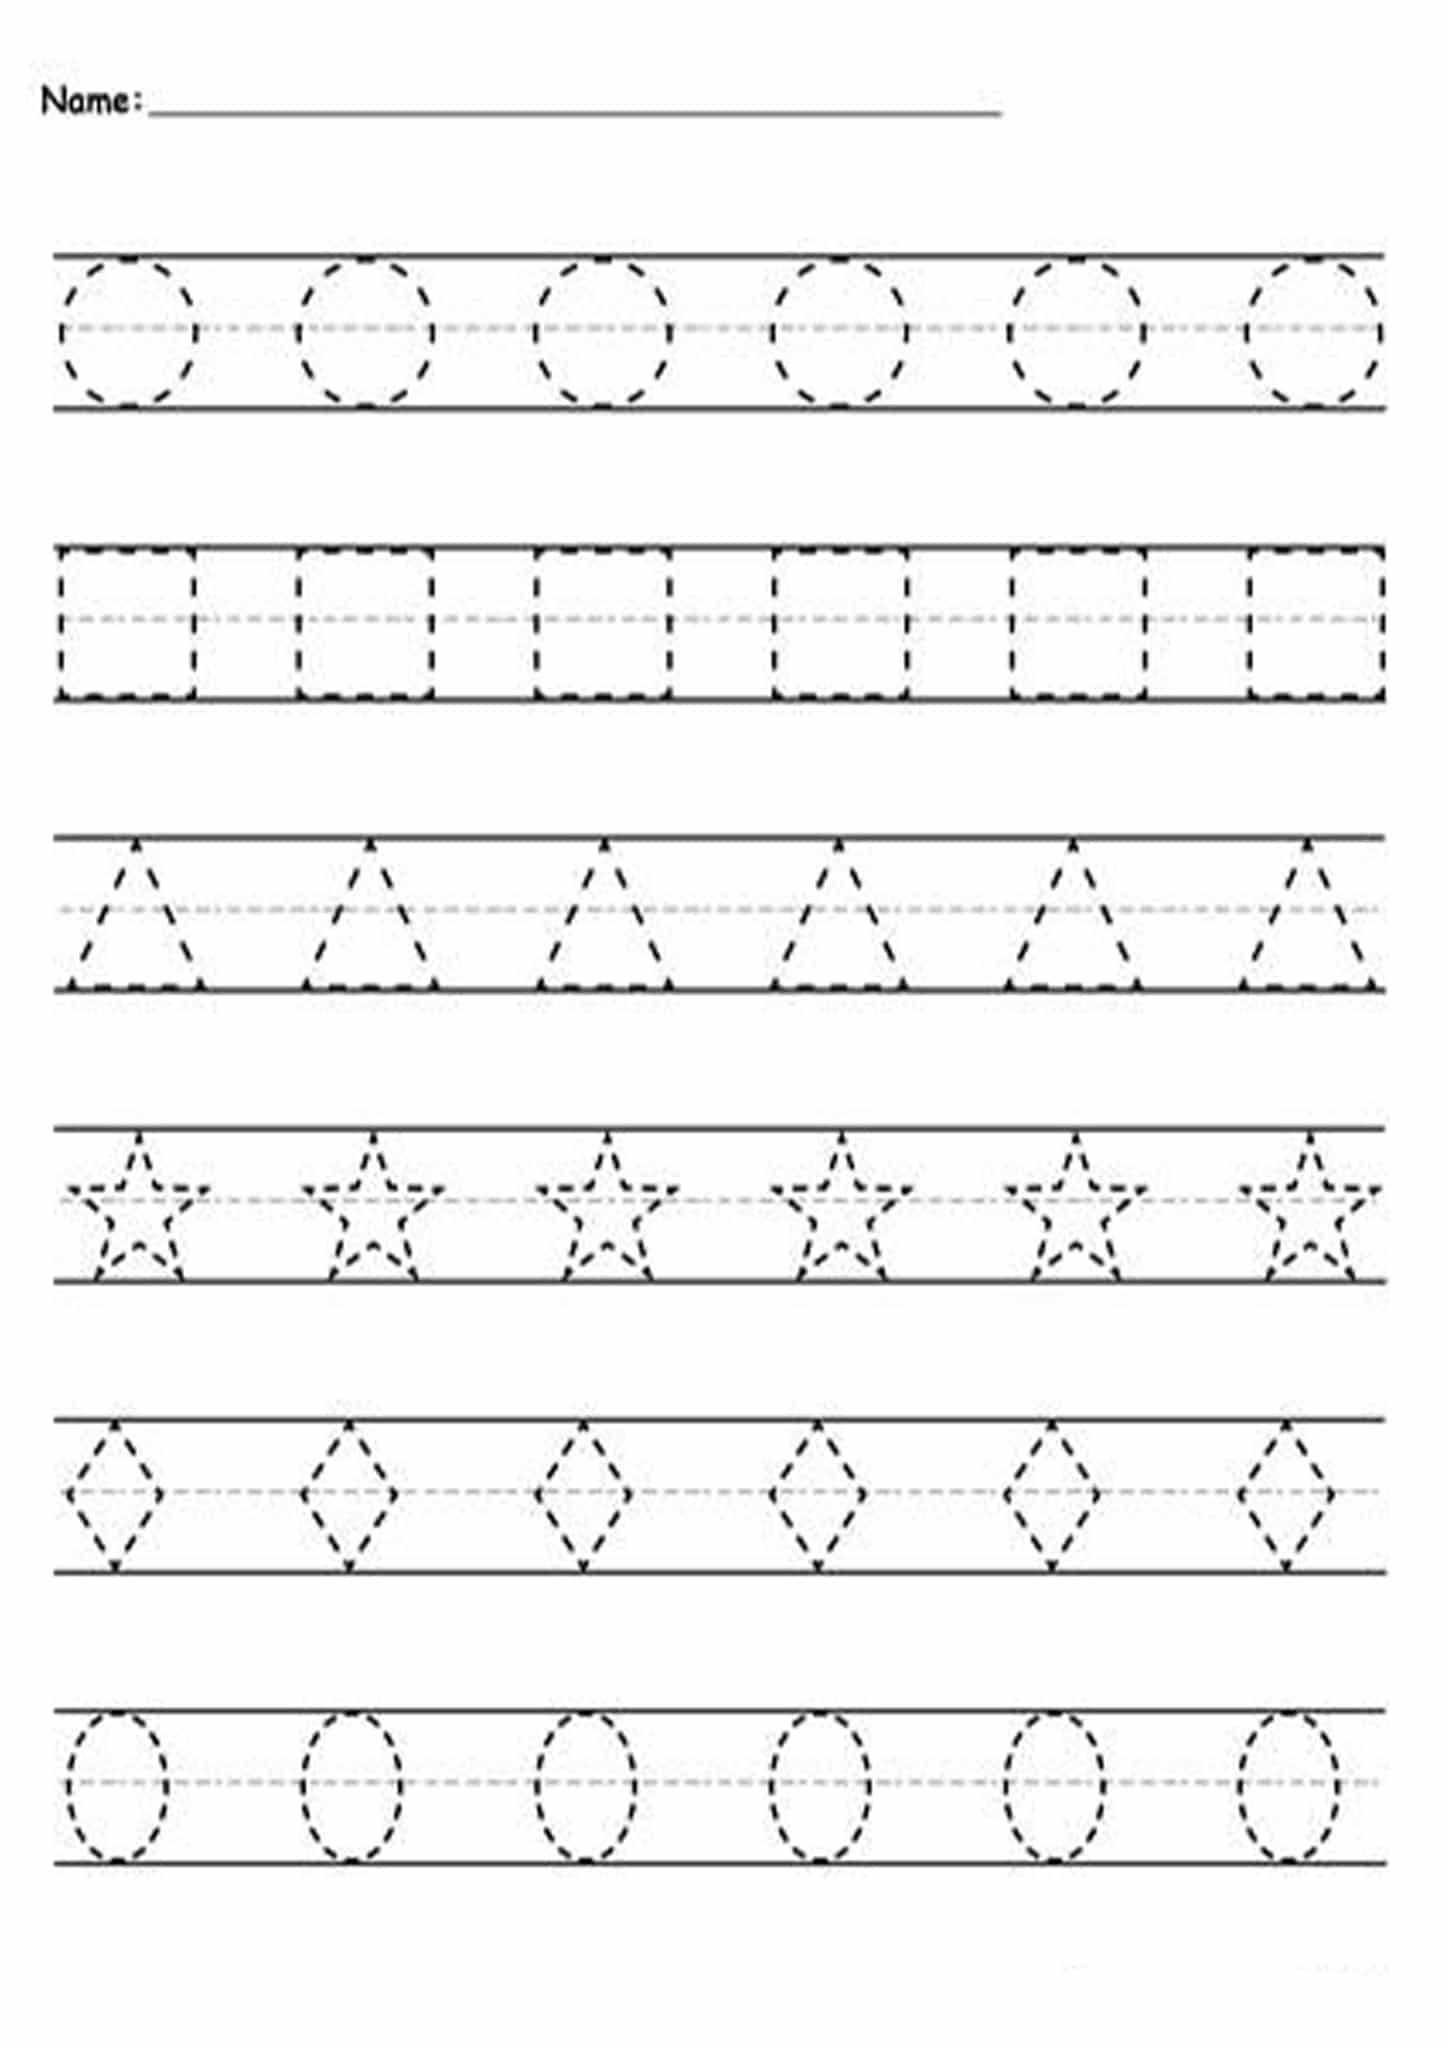 Tracing Dotted Lines Worksheets Free